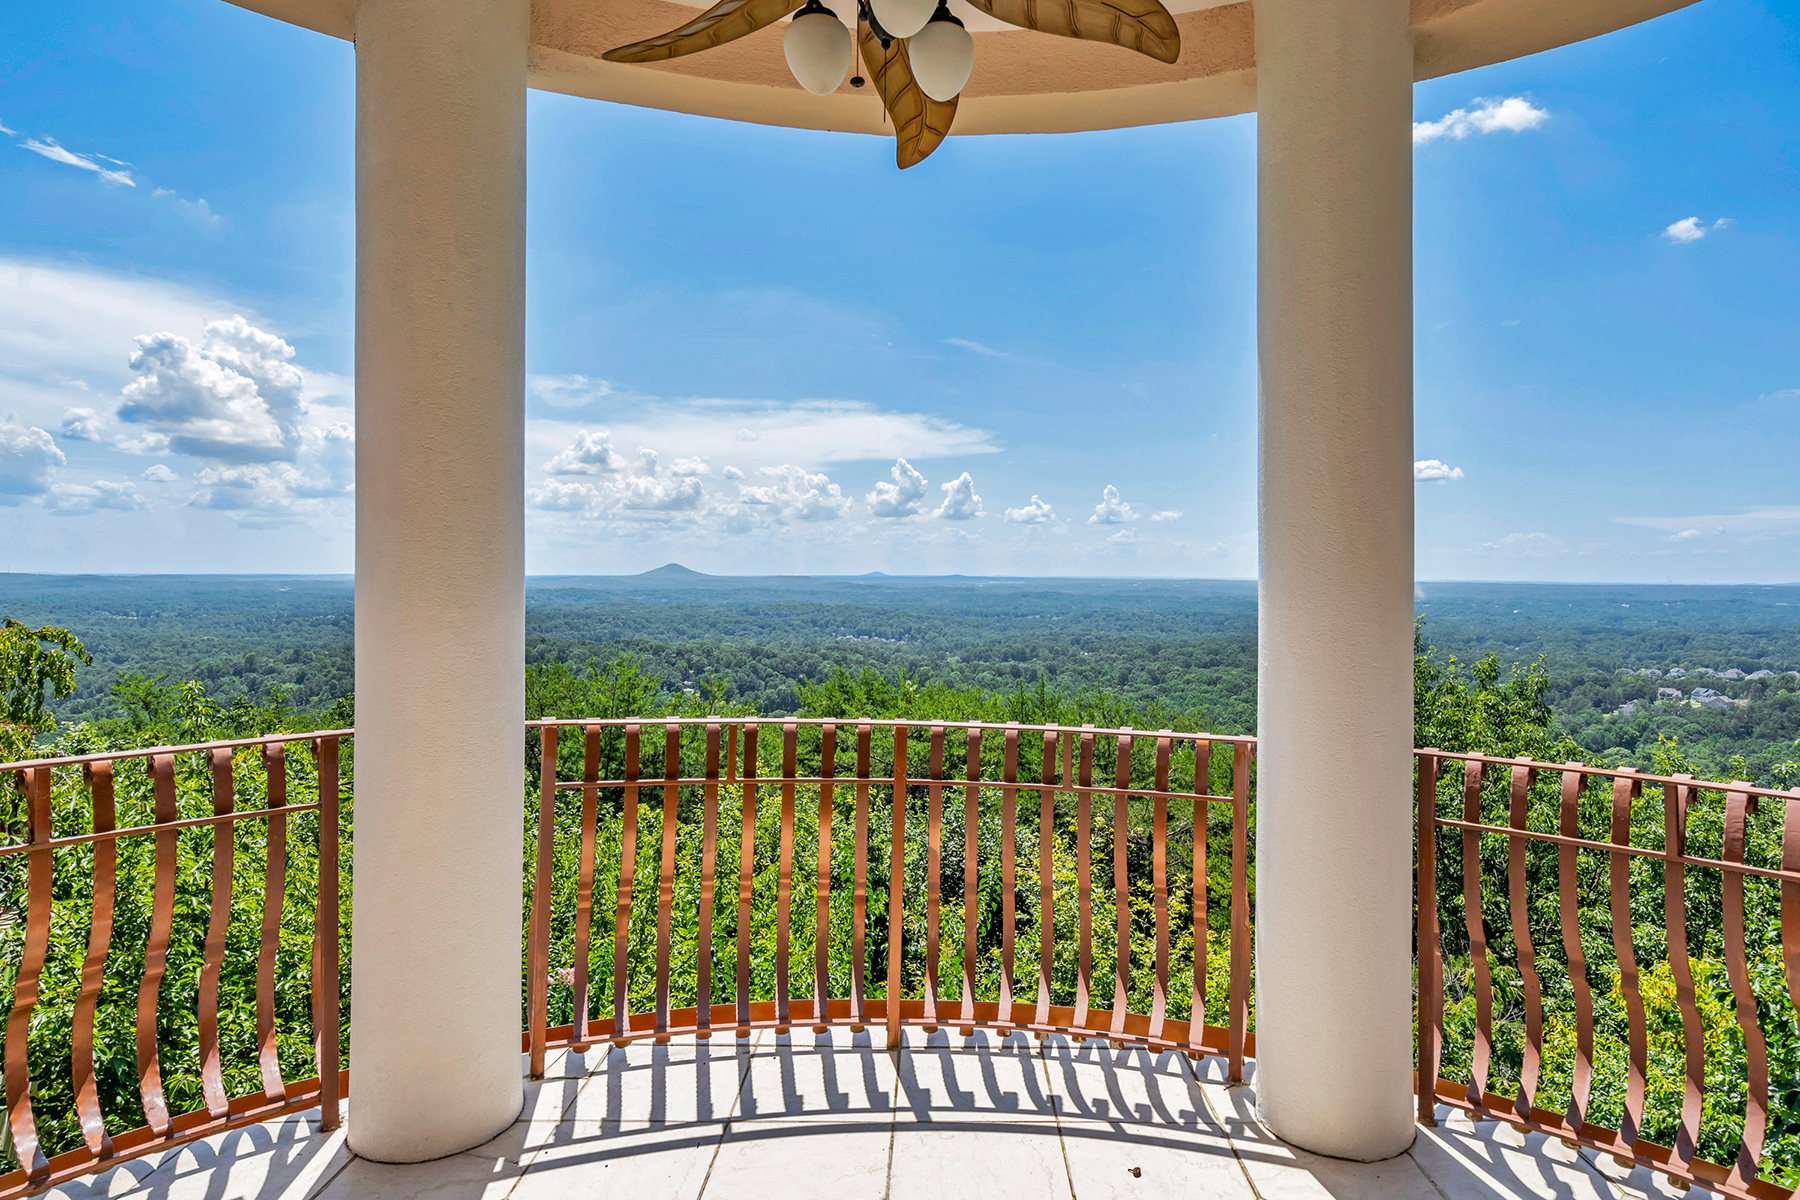 Additional photo for property listing at Mountain Top Villa with Endless Verdant Views 2948 Summitop Road Marietta, Georgia 30066 United States